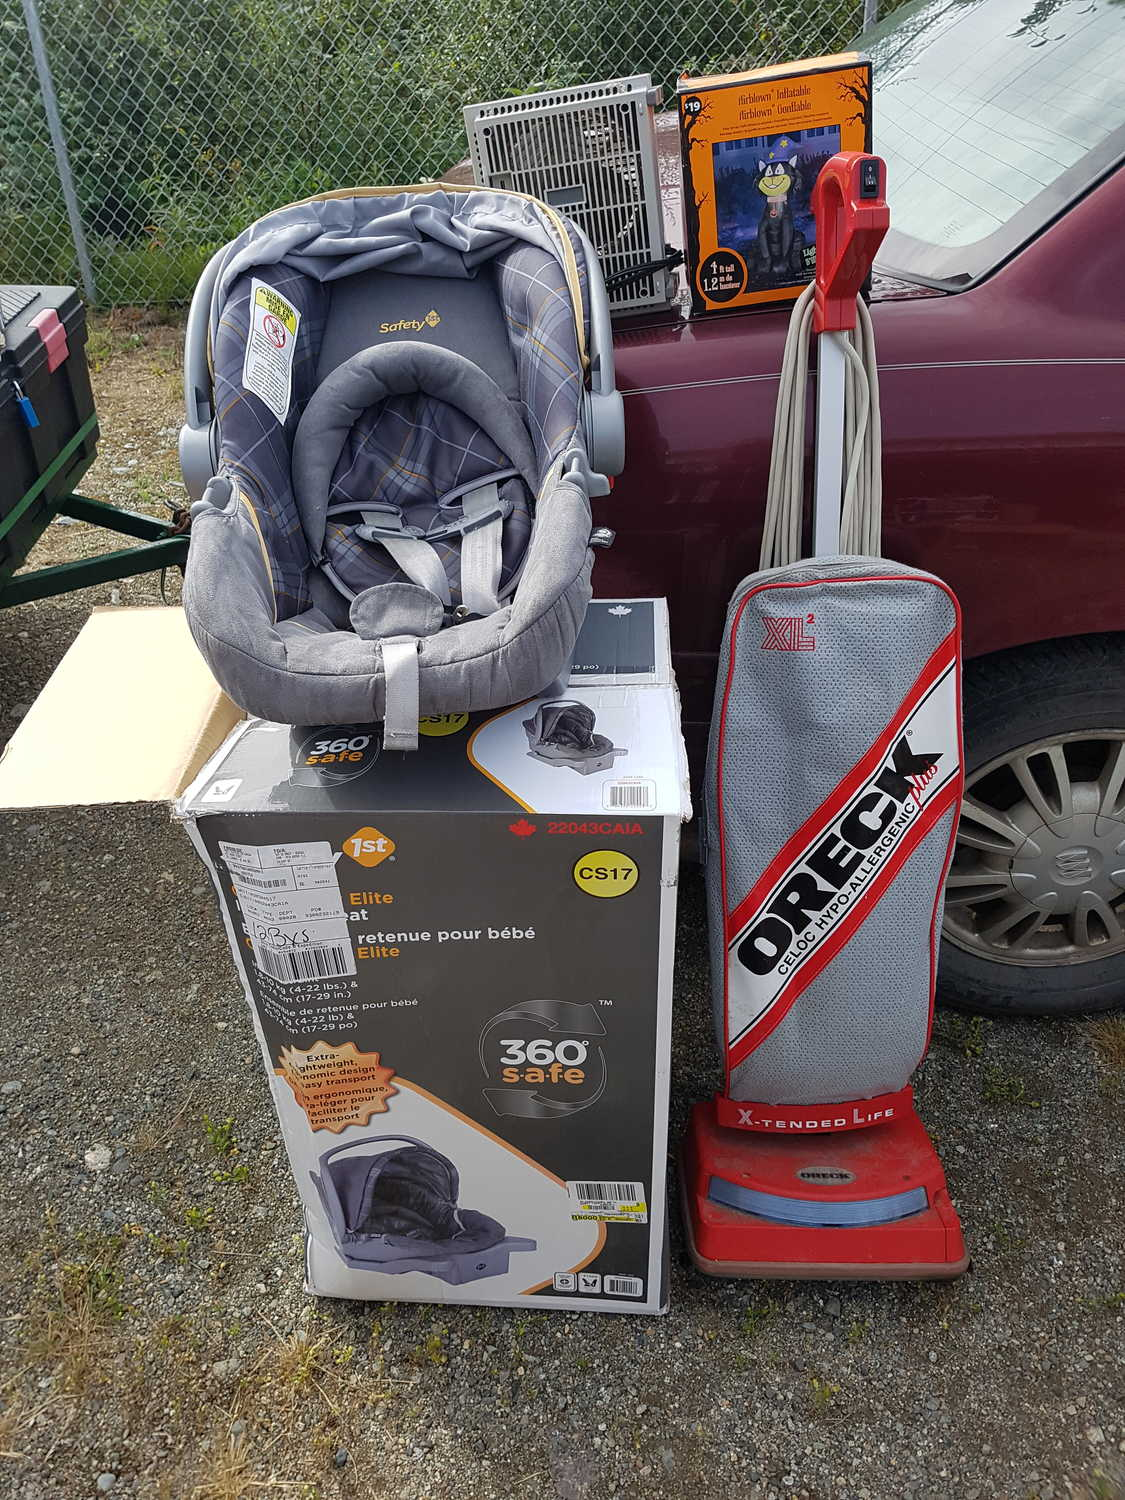 baby car seat 60.00 oreck 60.00 inflatable cat 5.00 heater 8.00